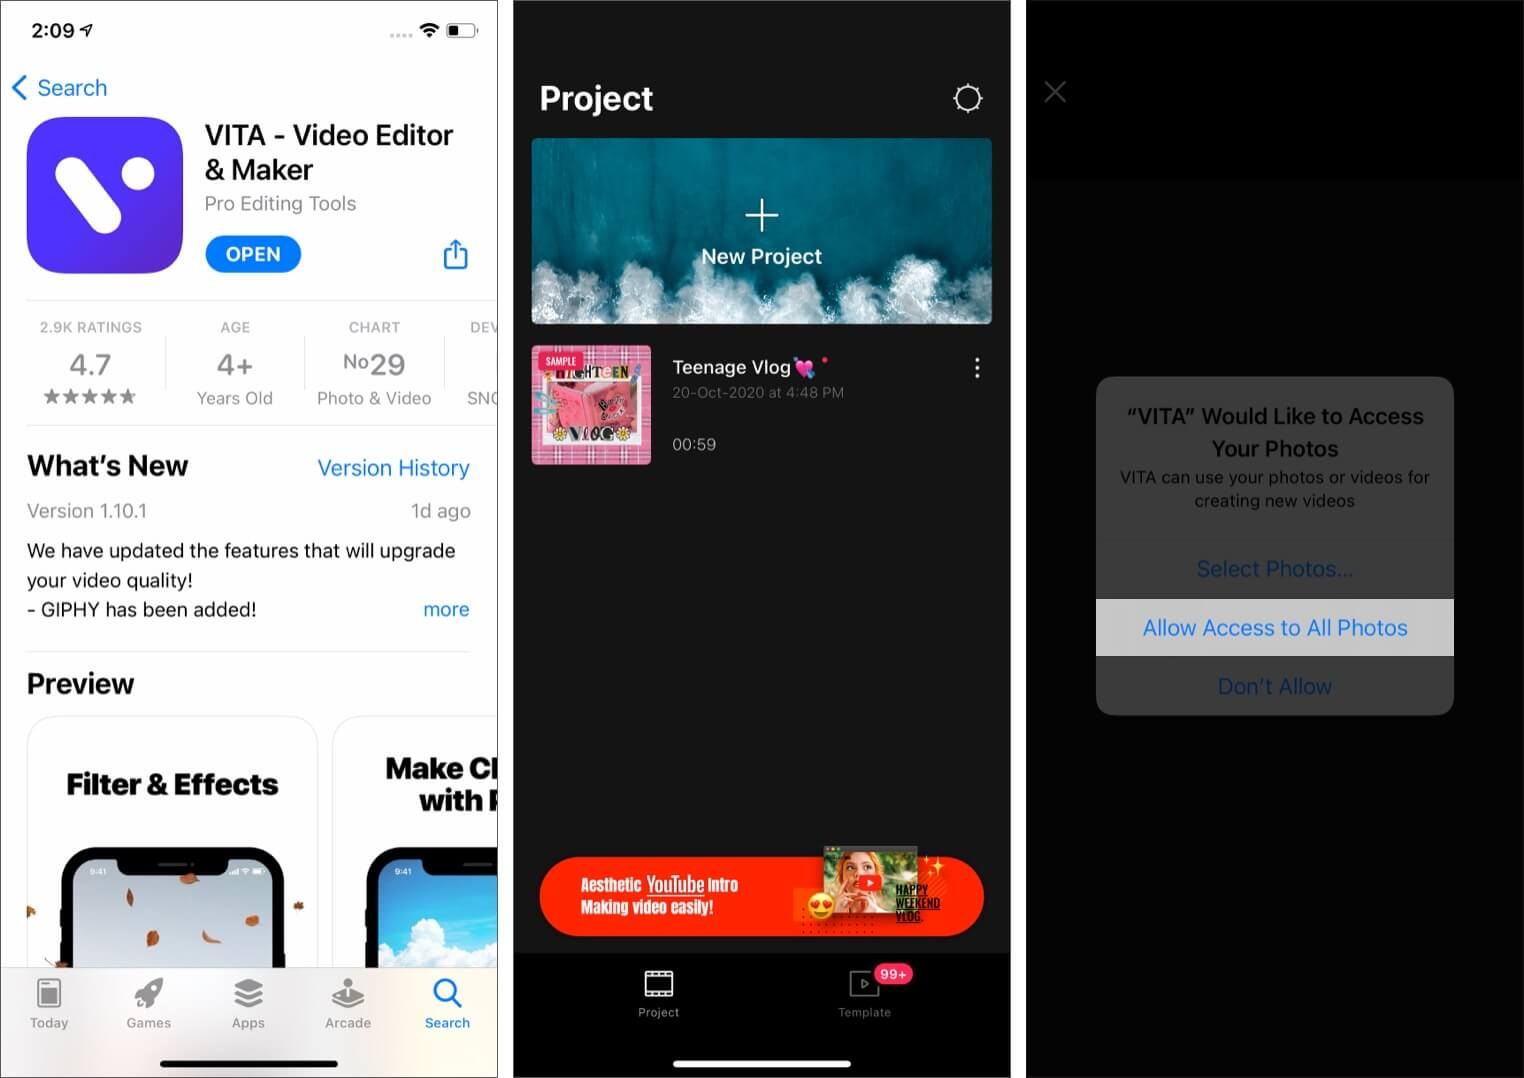 Download VITA Video Editor Tap on New Project and Allow Photos Access